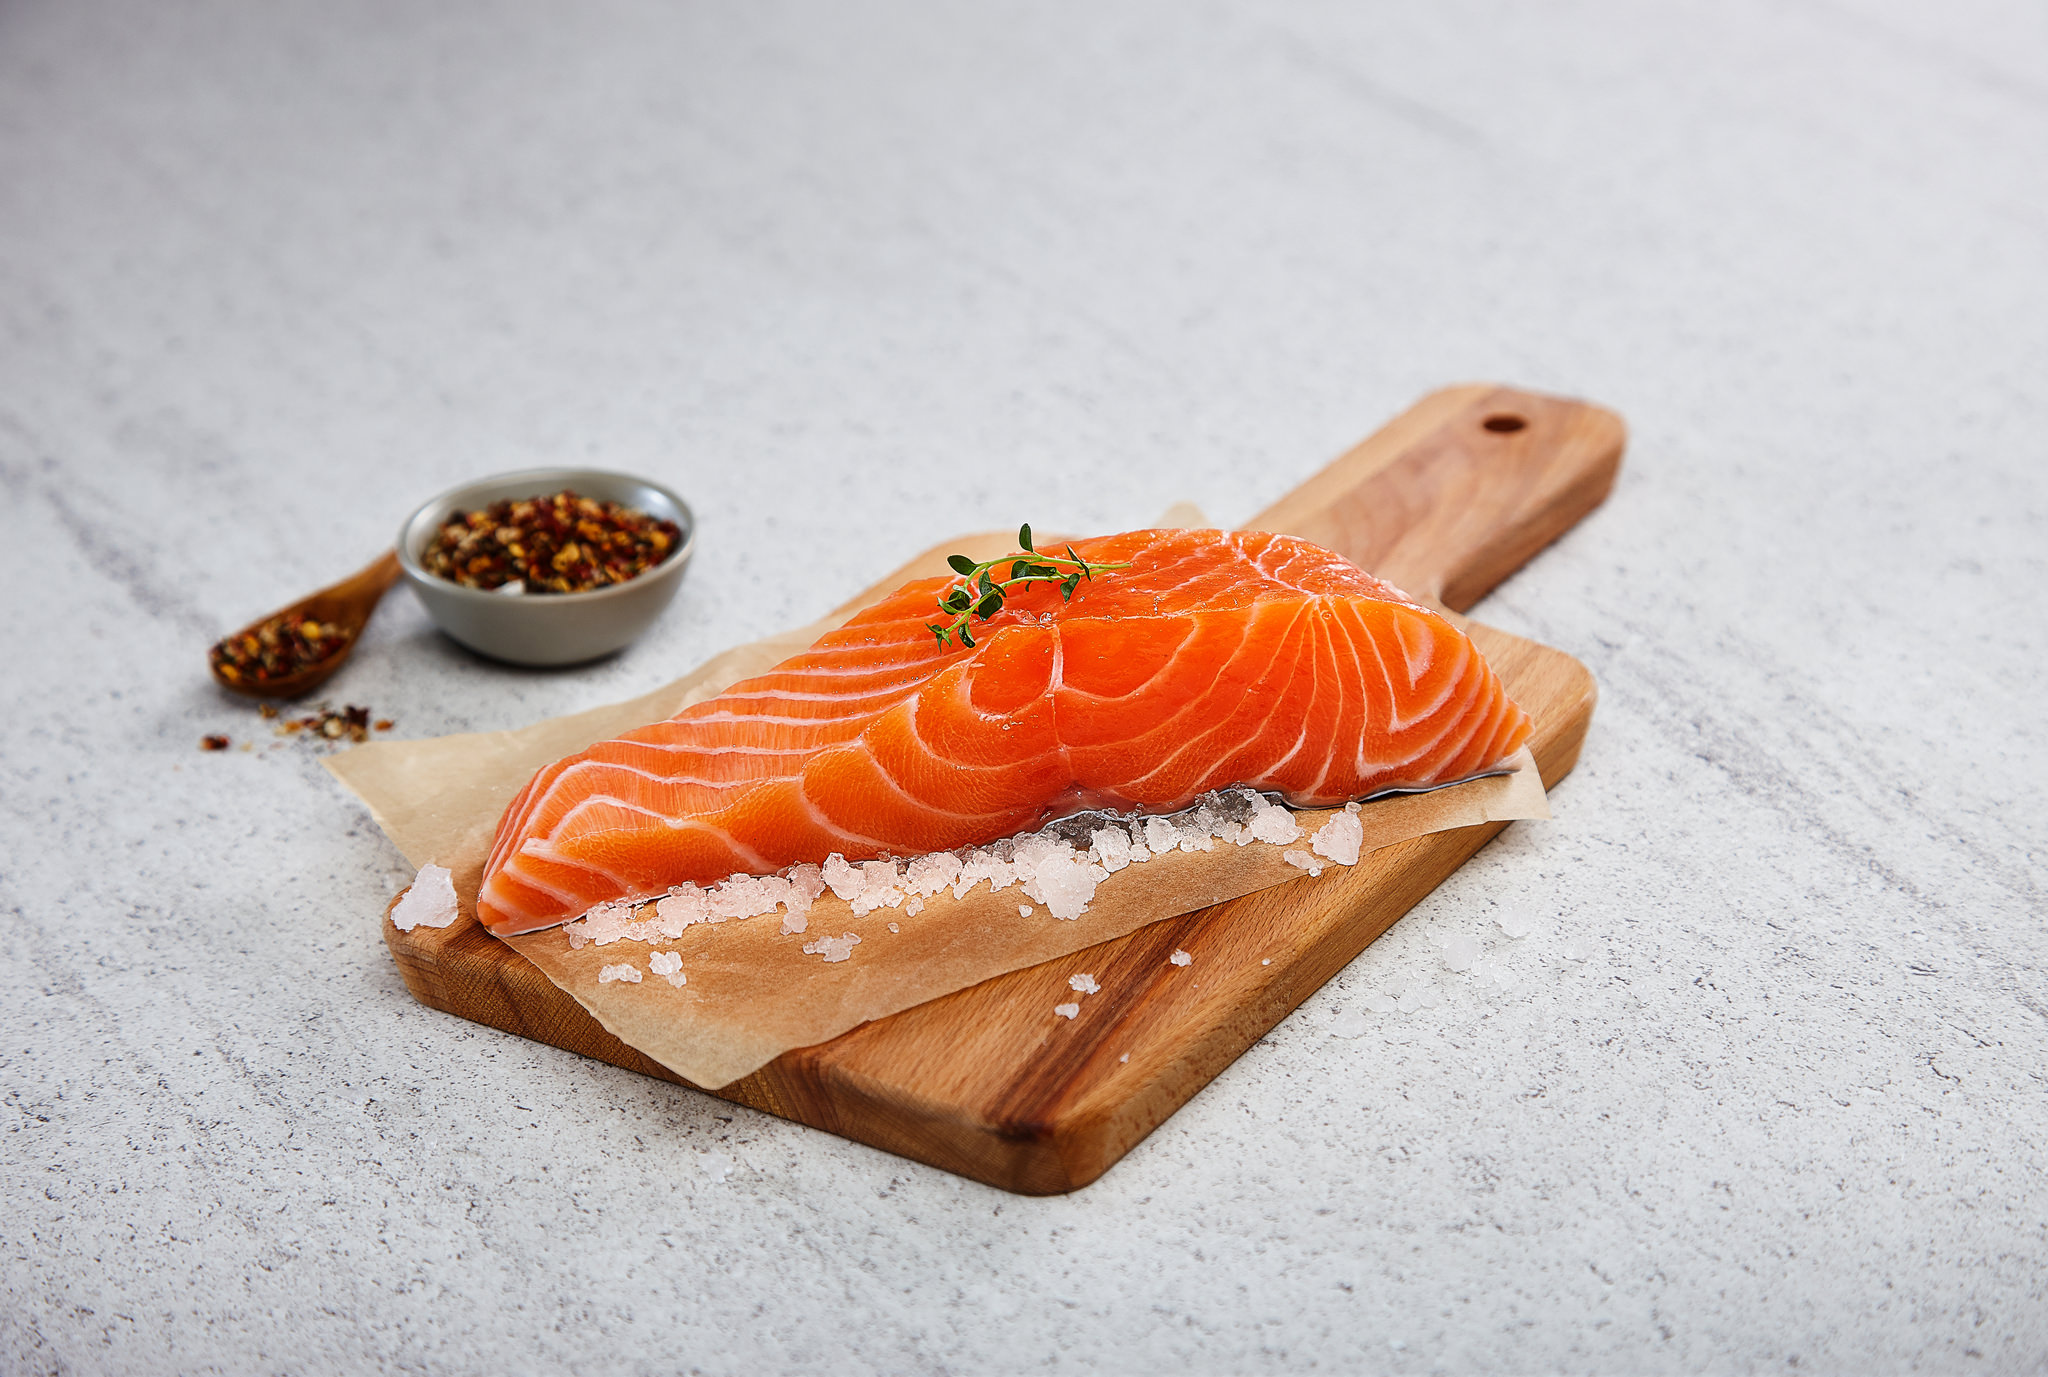 commercial food photographer singapore